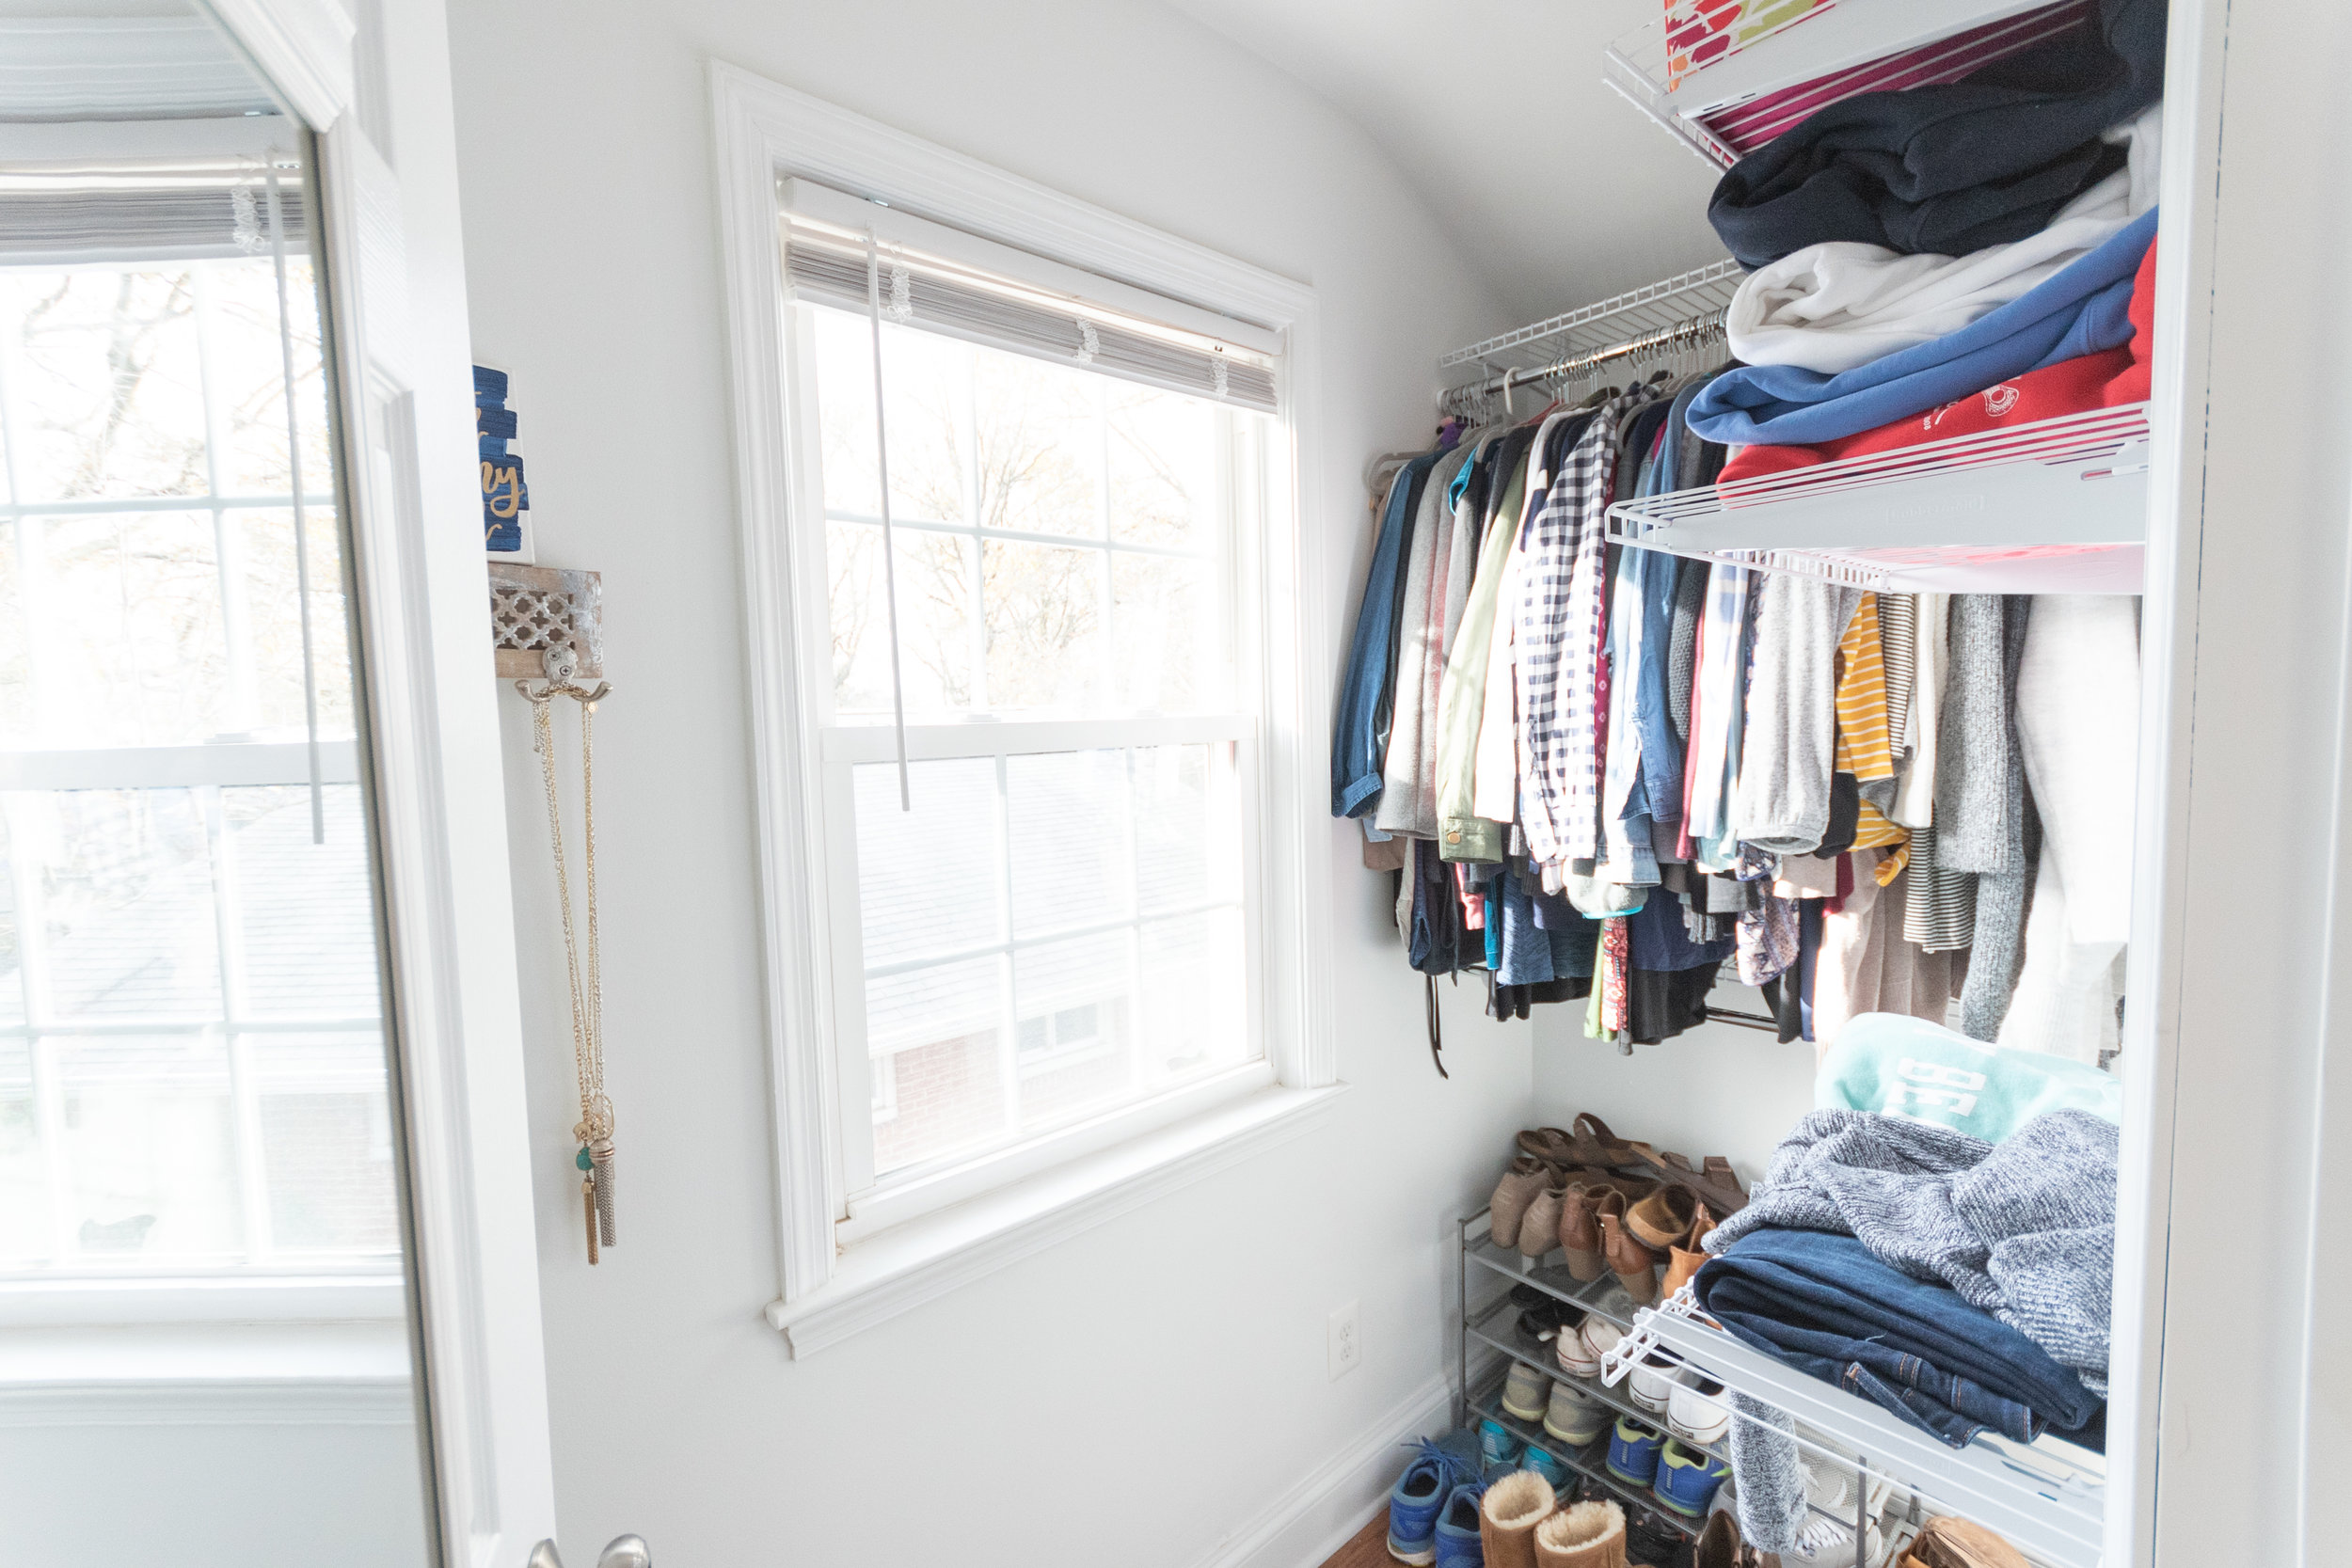 … and my awesome walk in closet that has since been filled completely! So excited to have all my winter and summer clothes up year round instead of having to pack away clothes every season! There is another large closet on the left in our bedroom that Tommy uses.